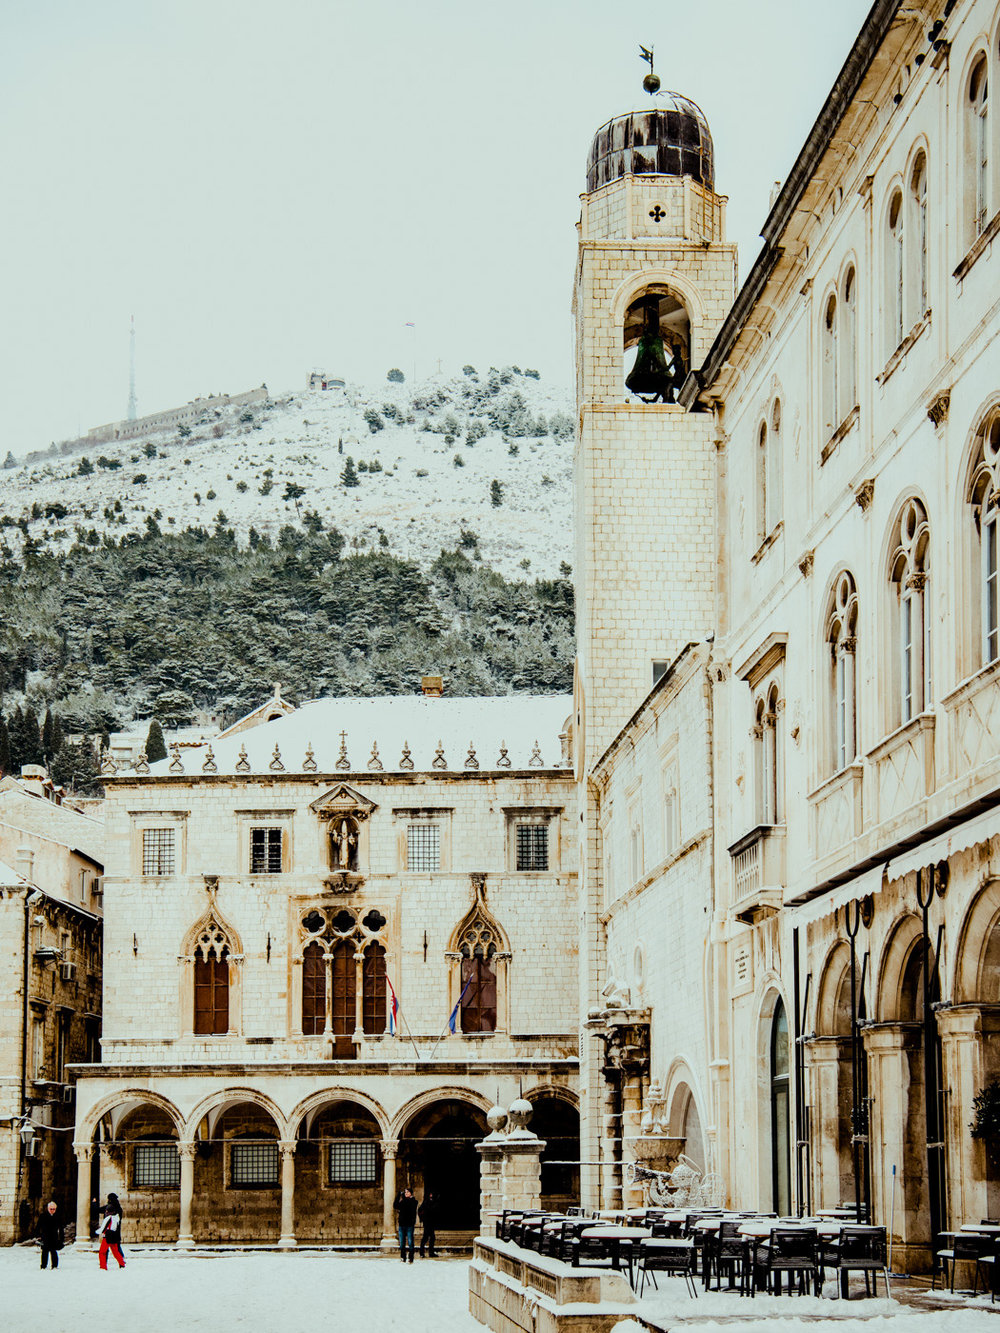 The Stradun of Dubrovnik, Croatia, covered in winter snow.